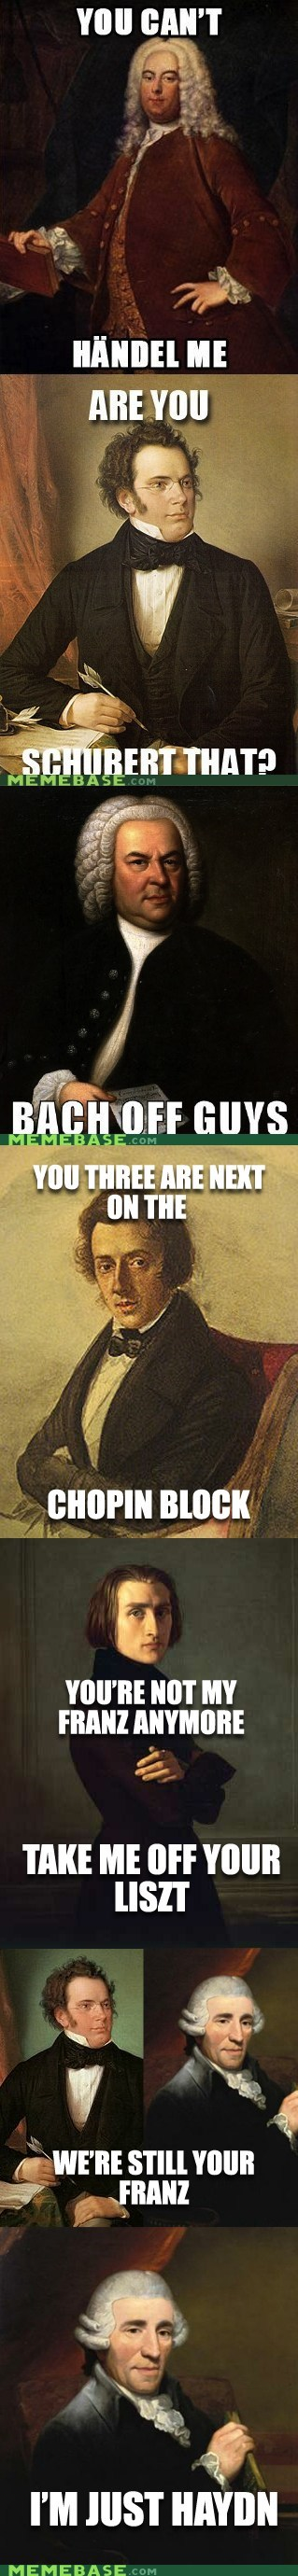 composers friends Memes Music puns treble - 6331554048